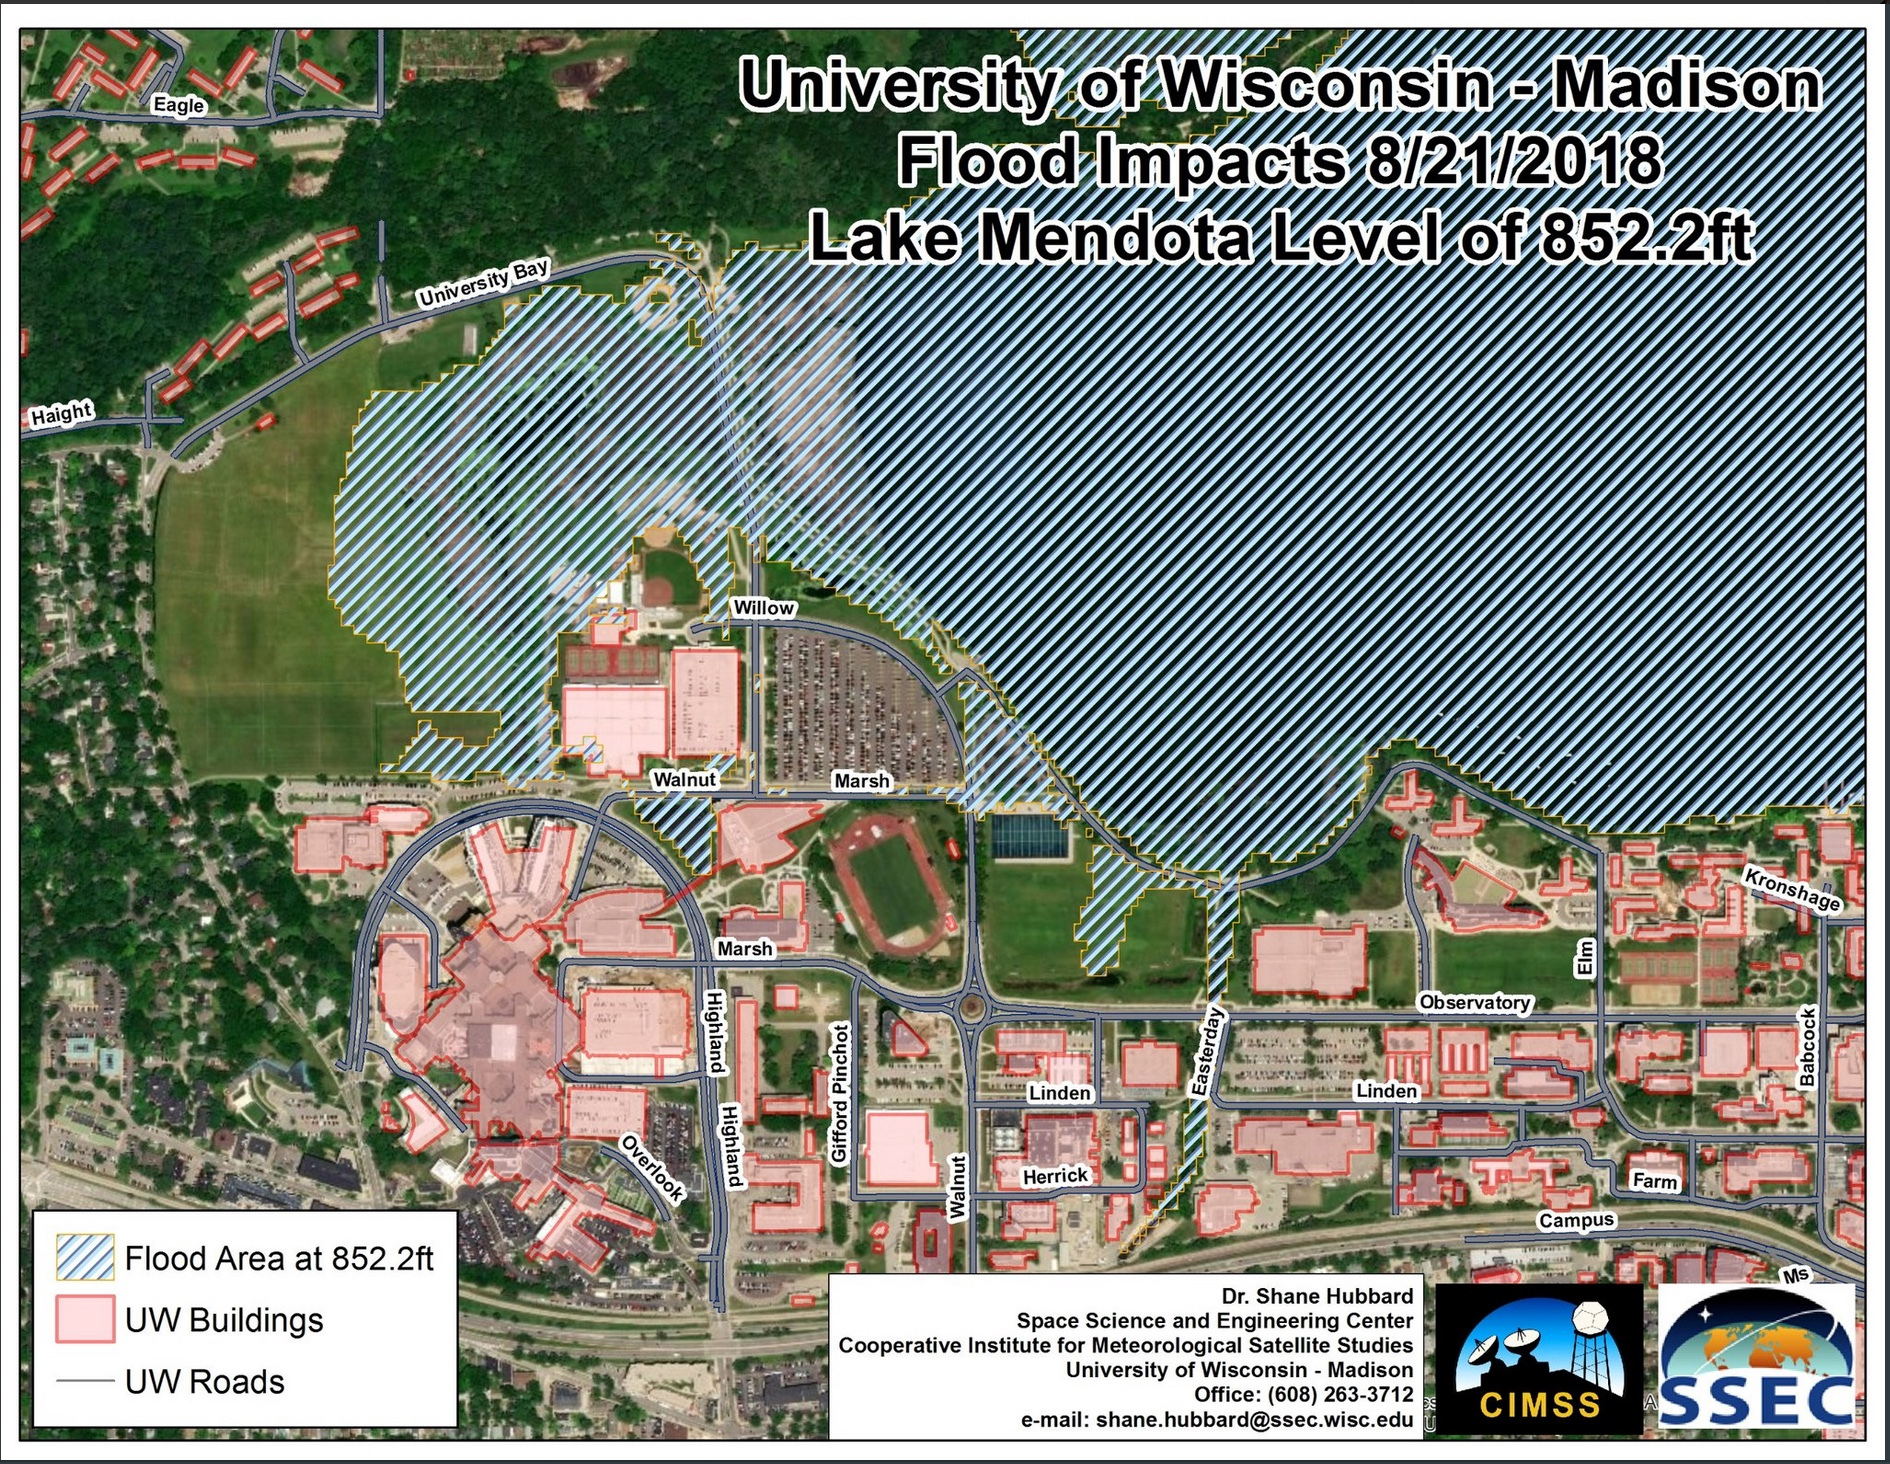 Map of flood impacts for portions of the UW-Madison campus adjacent to the southwestern shoreline of Lake Mendota [click to enlarge]